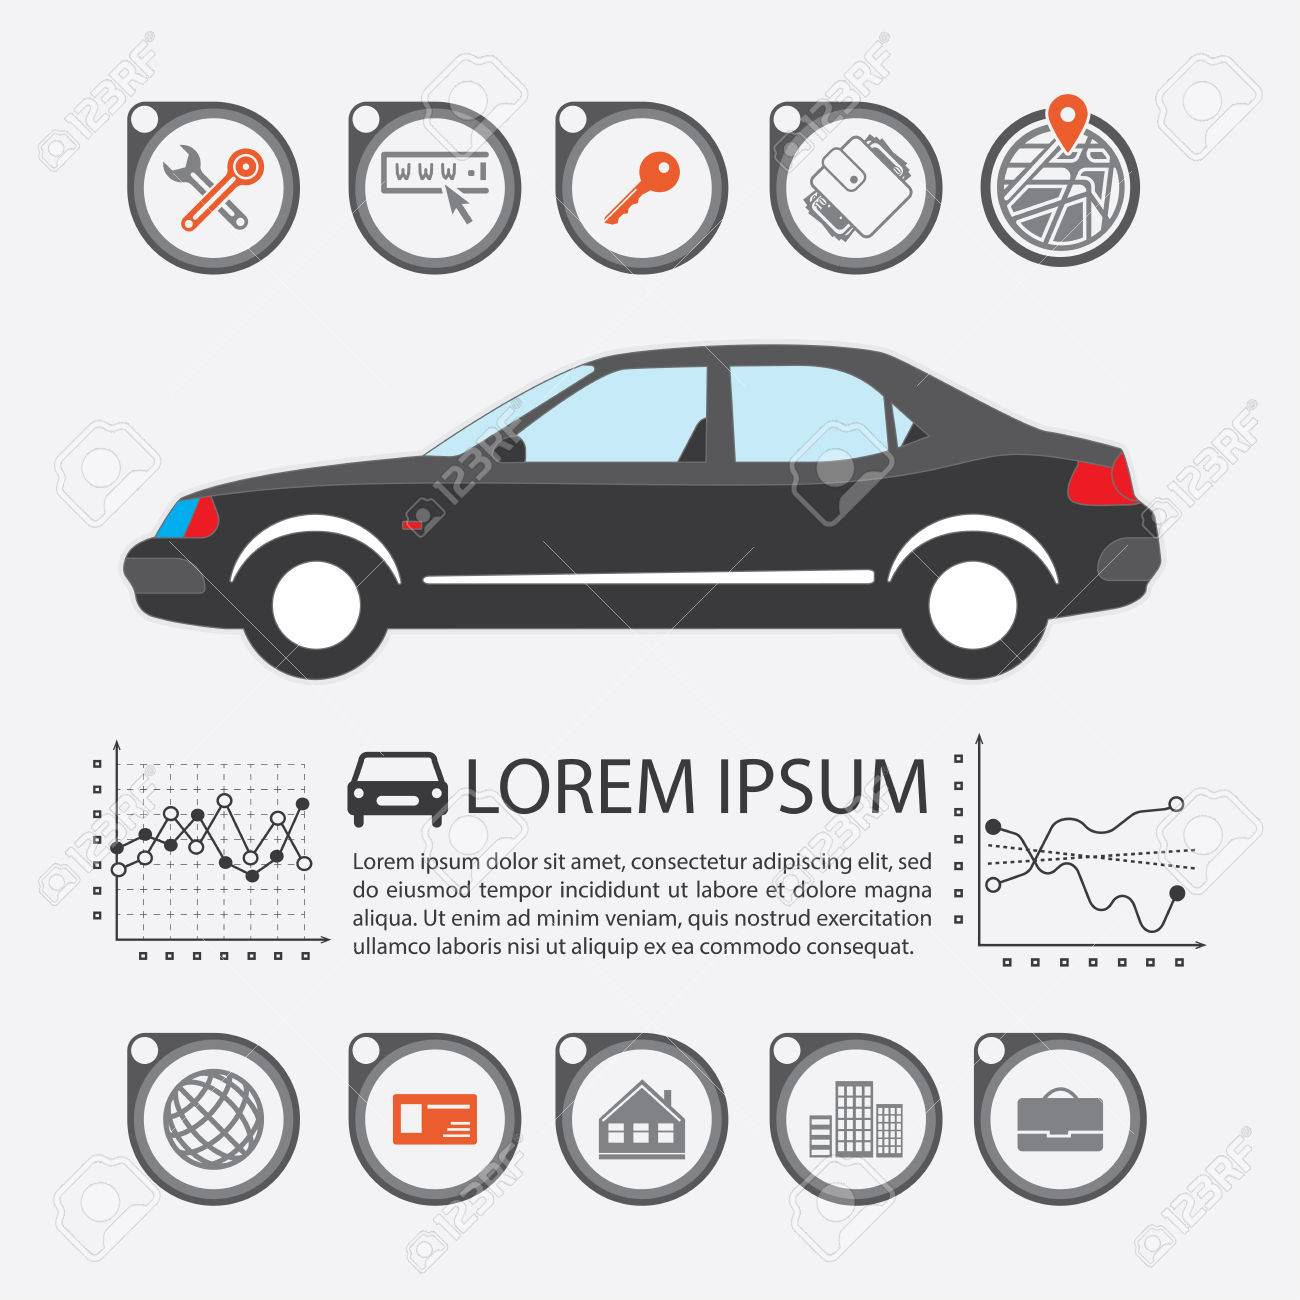 Information Graphics Design Element And Vehicle Illustrations Royalty Free Cliparts Vectors And Stock Illustration Image 59595963